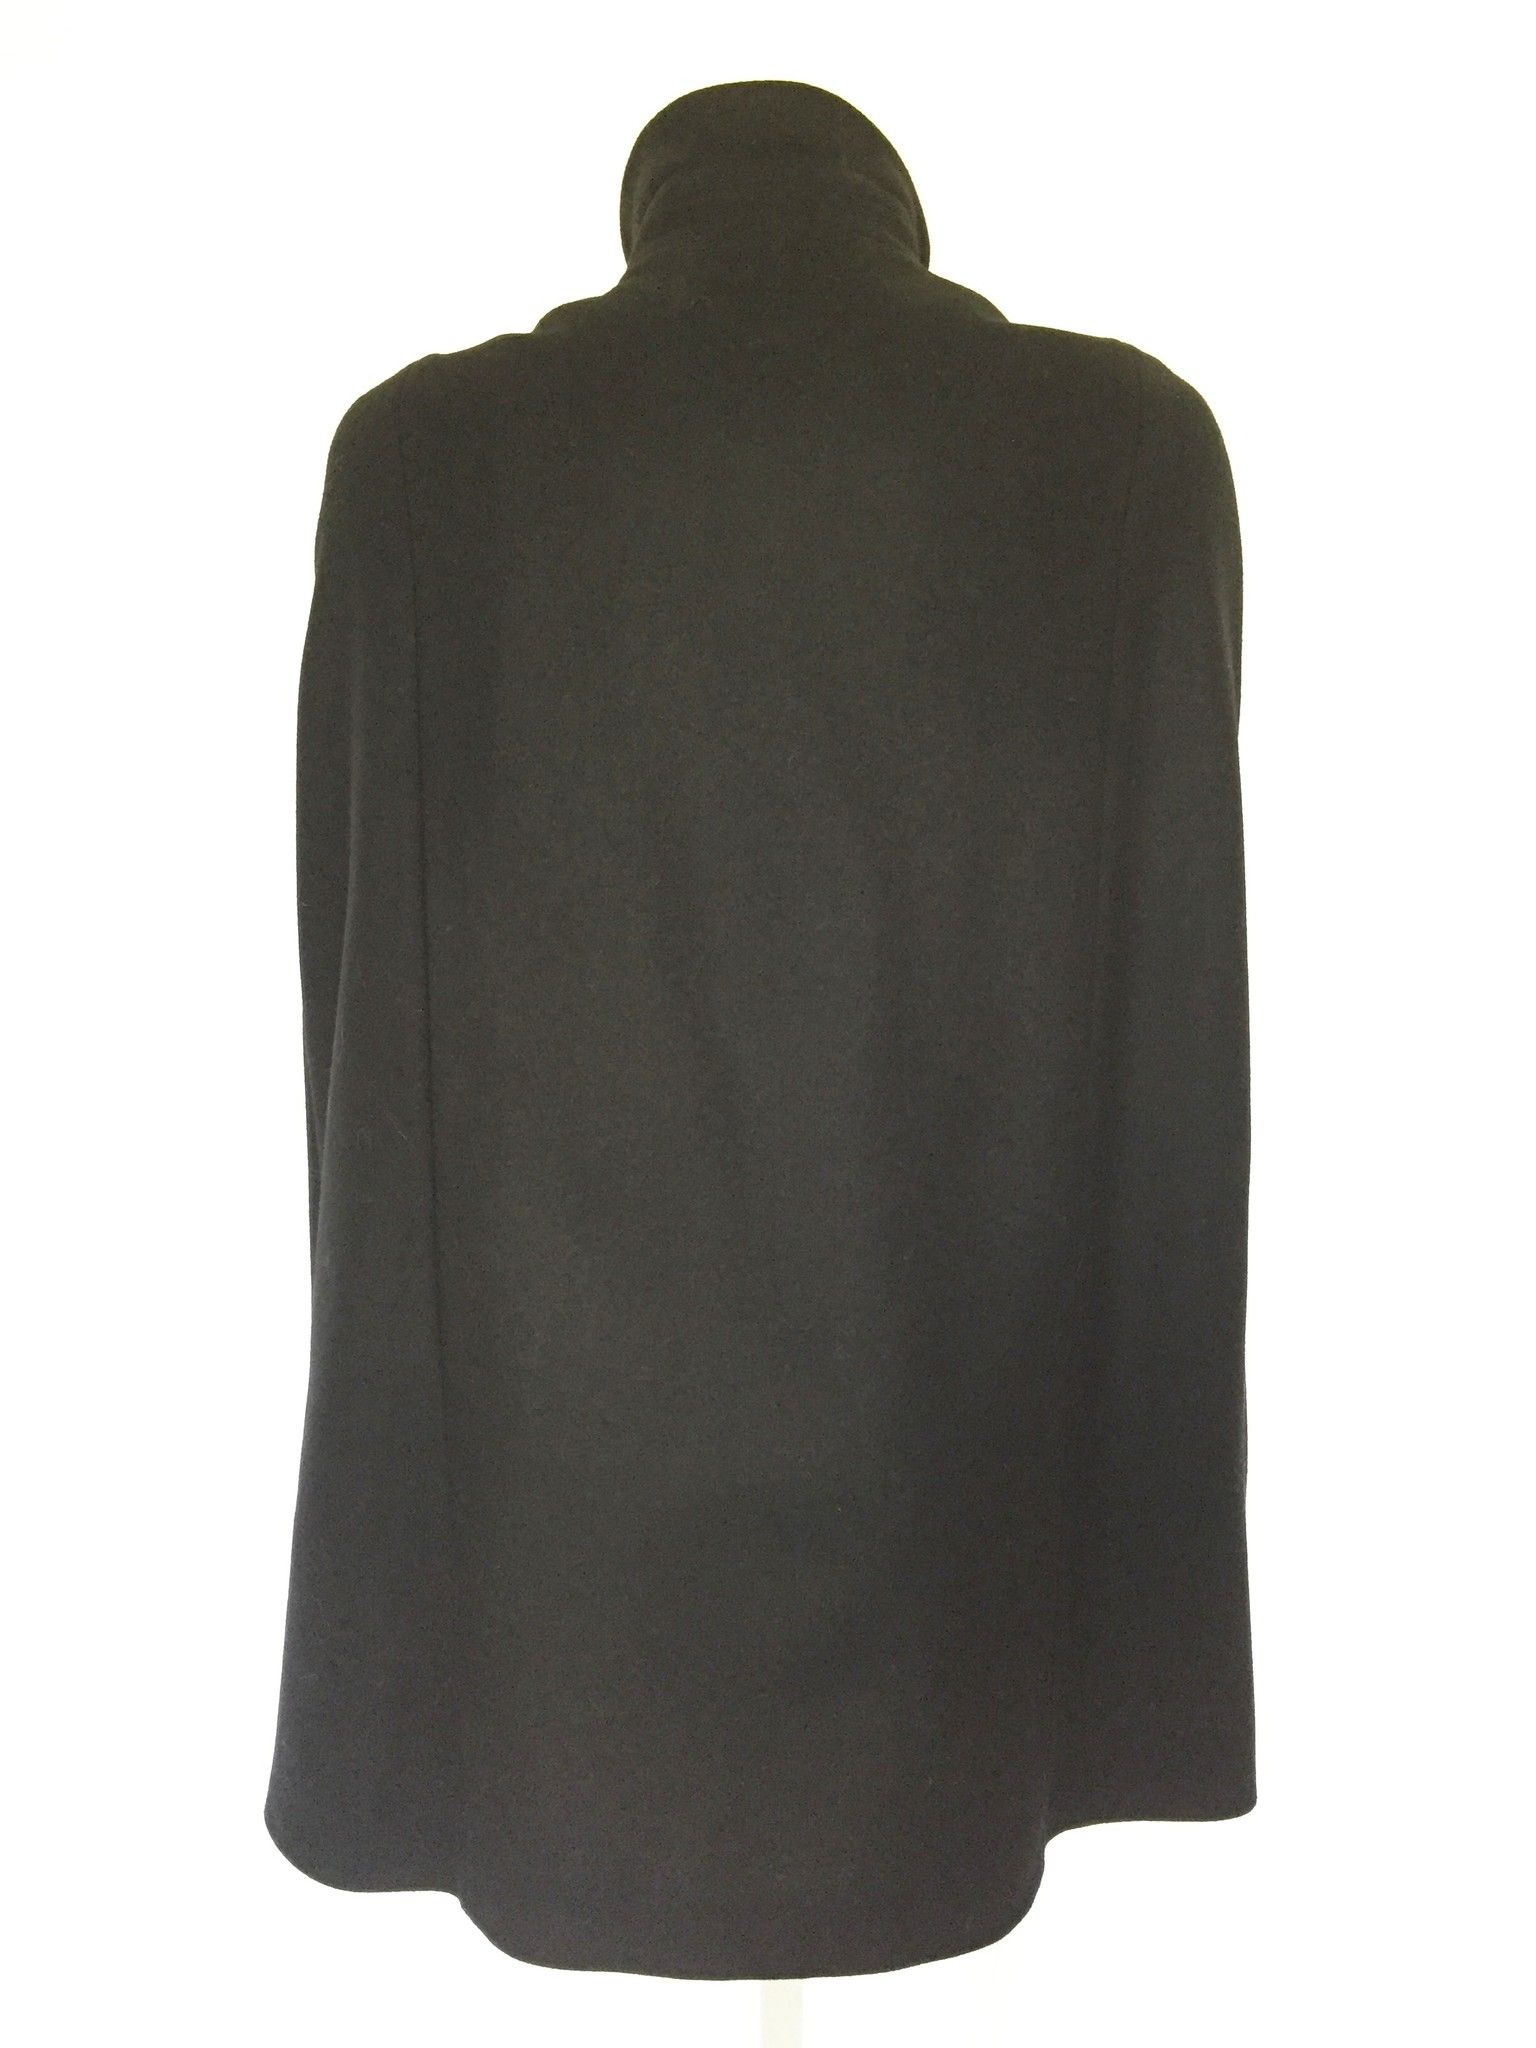 Space Cape with Silver Zippers Cod.5025N